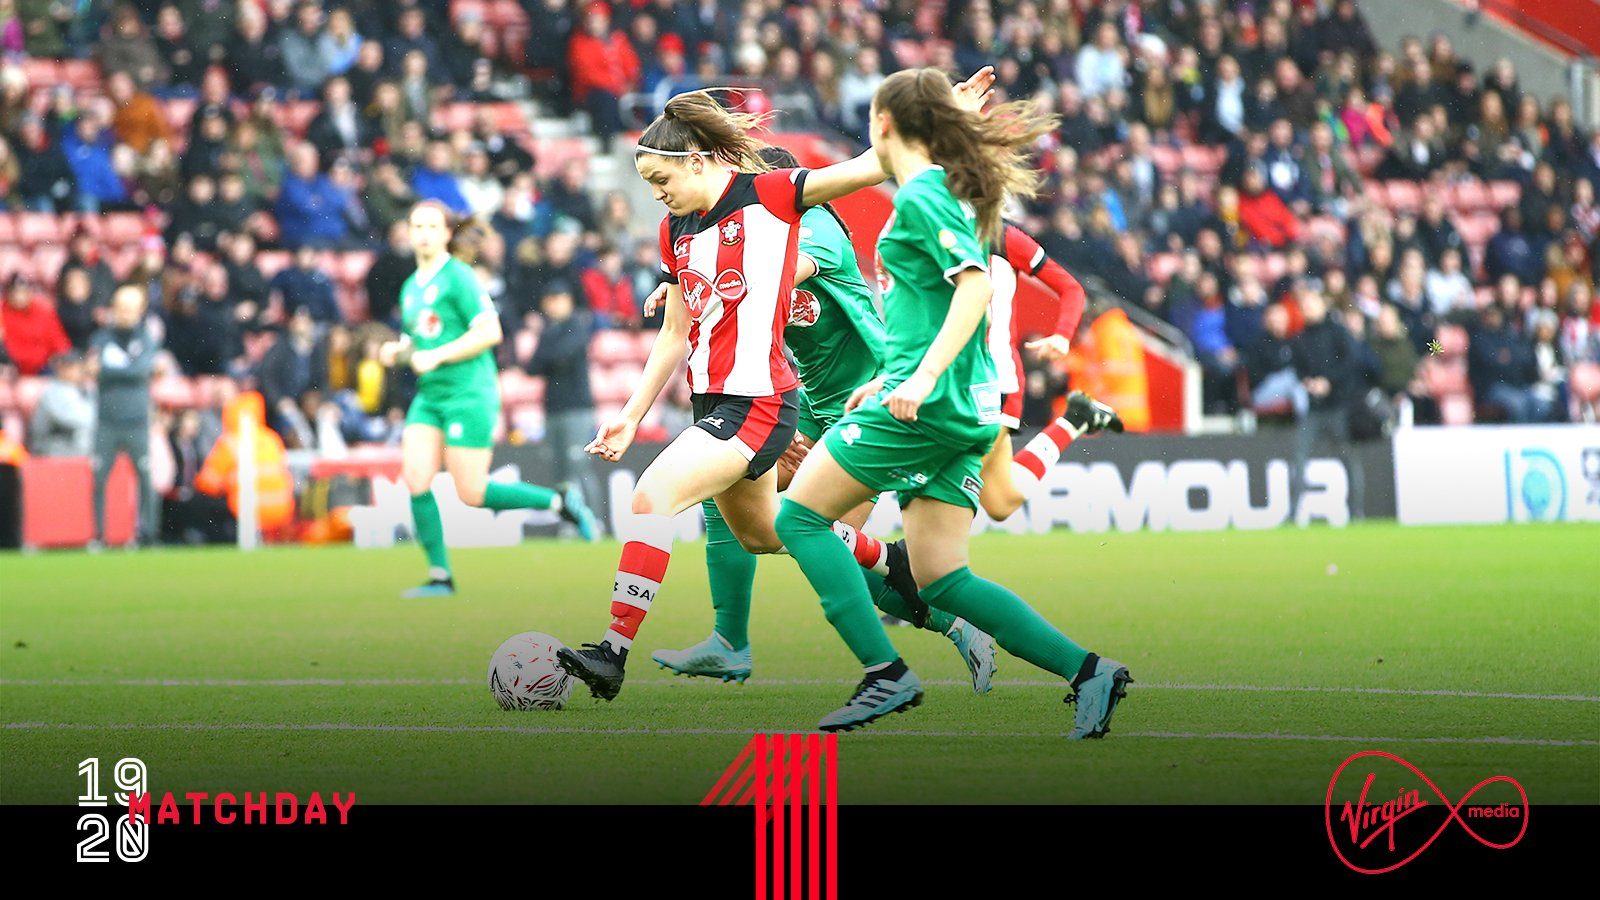 Southampton Women knocked out of Women's FA Cup at St Mary's